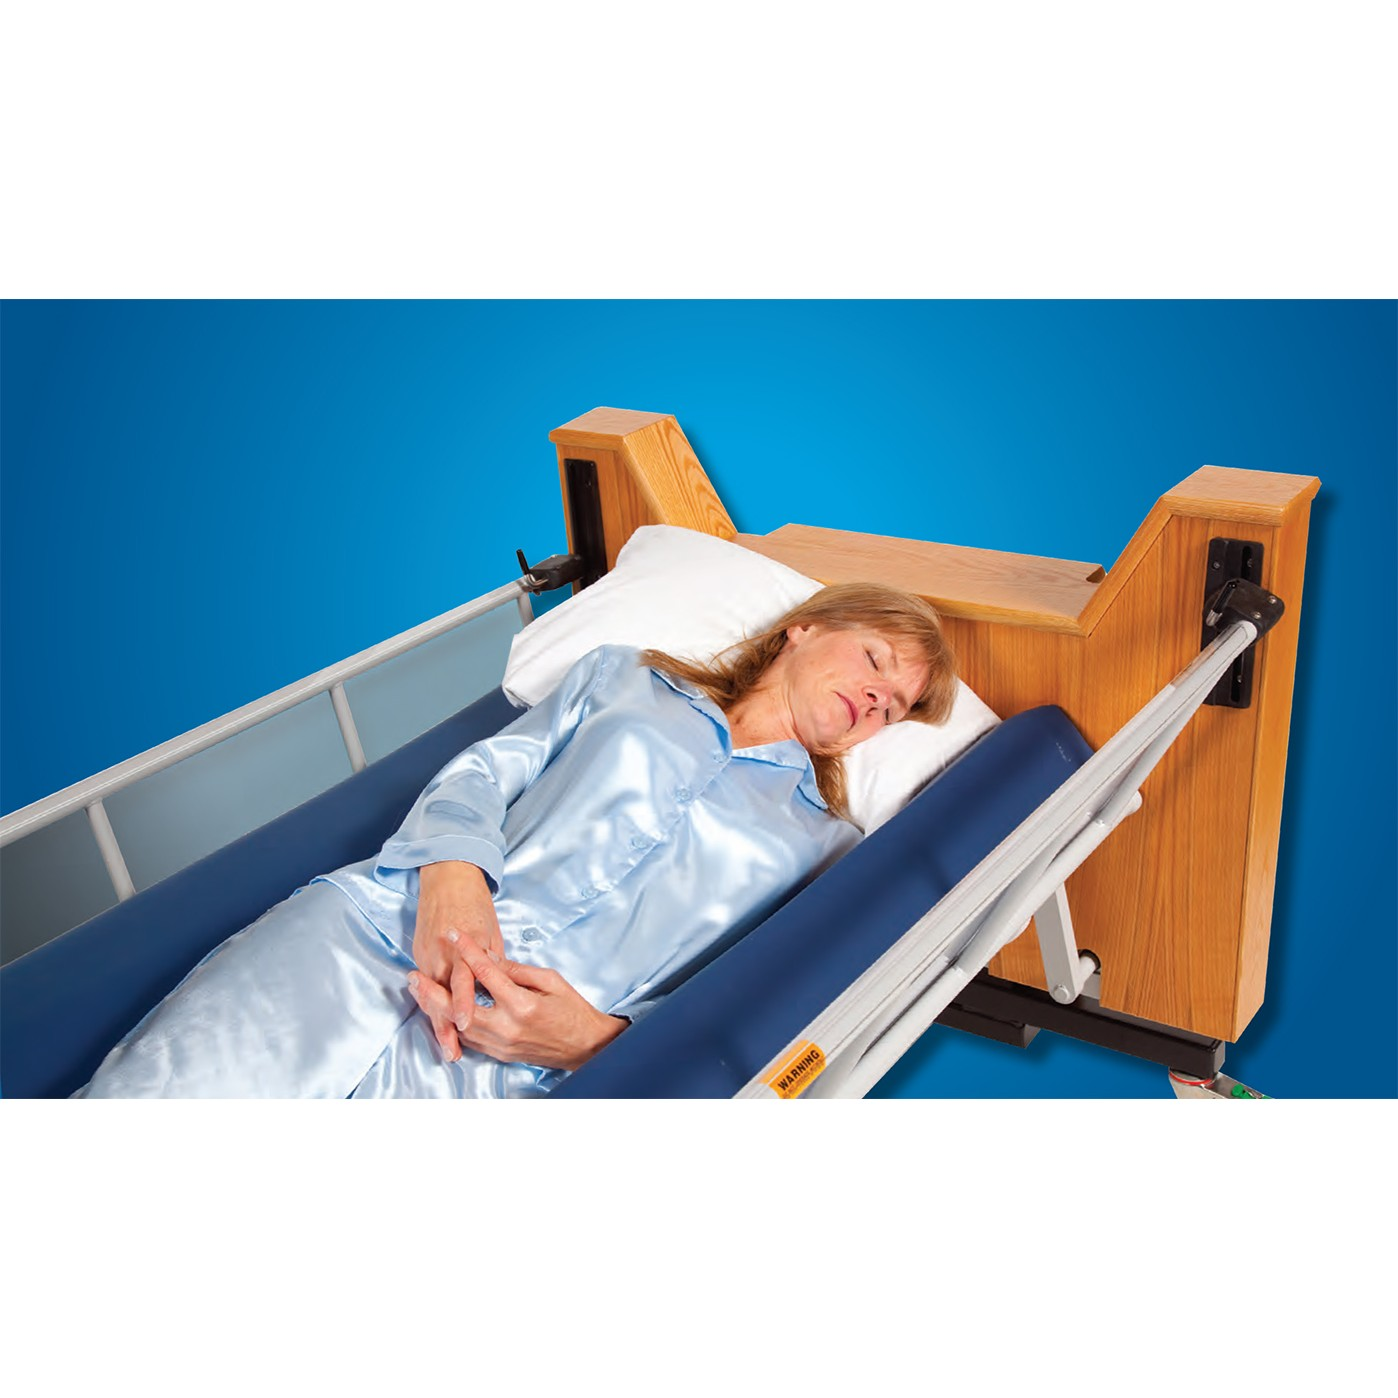 Woman sleeping in a ProBed Medical The Freedom Bed